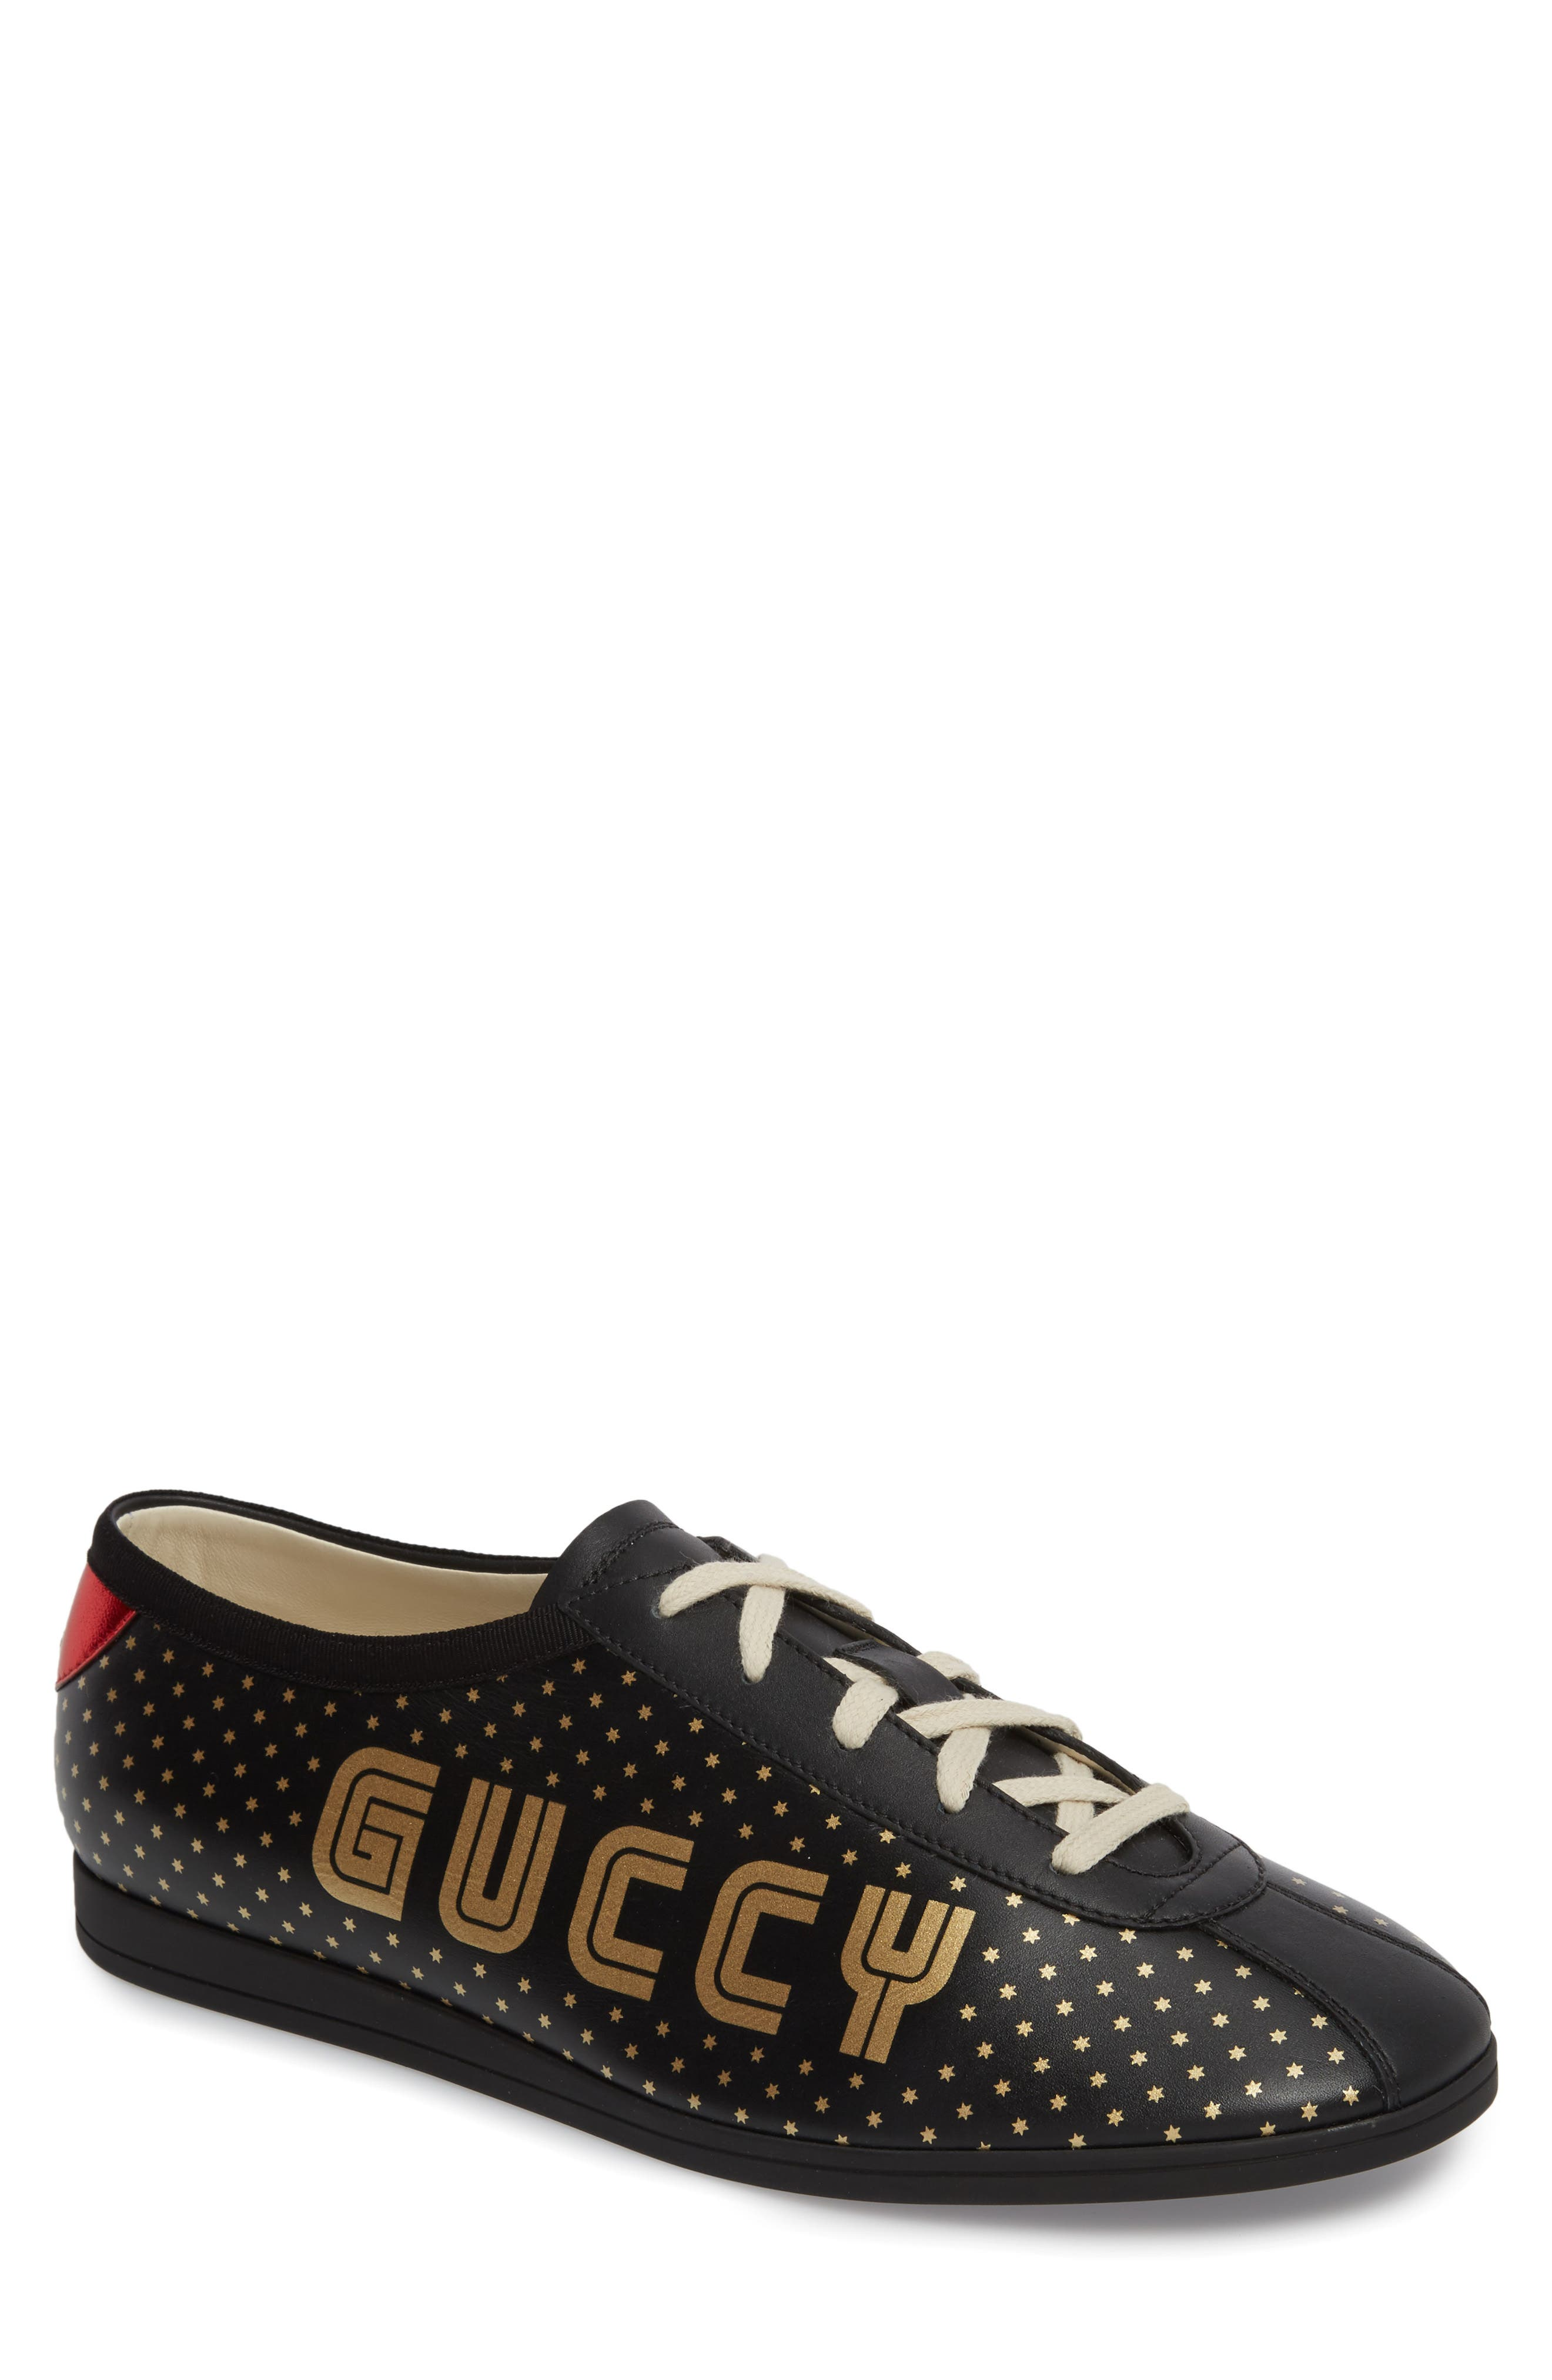 Falacer Guccy Print Sneaker,                             Main thumbnail 1, color,                             009